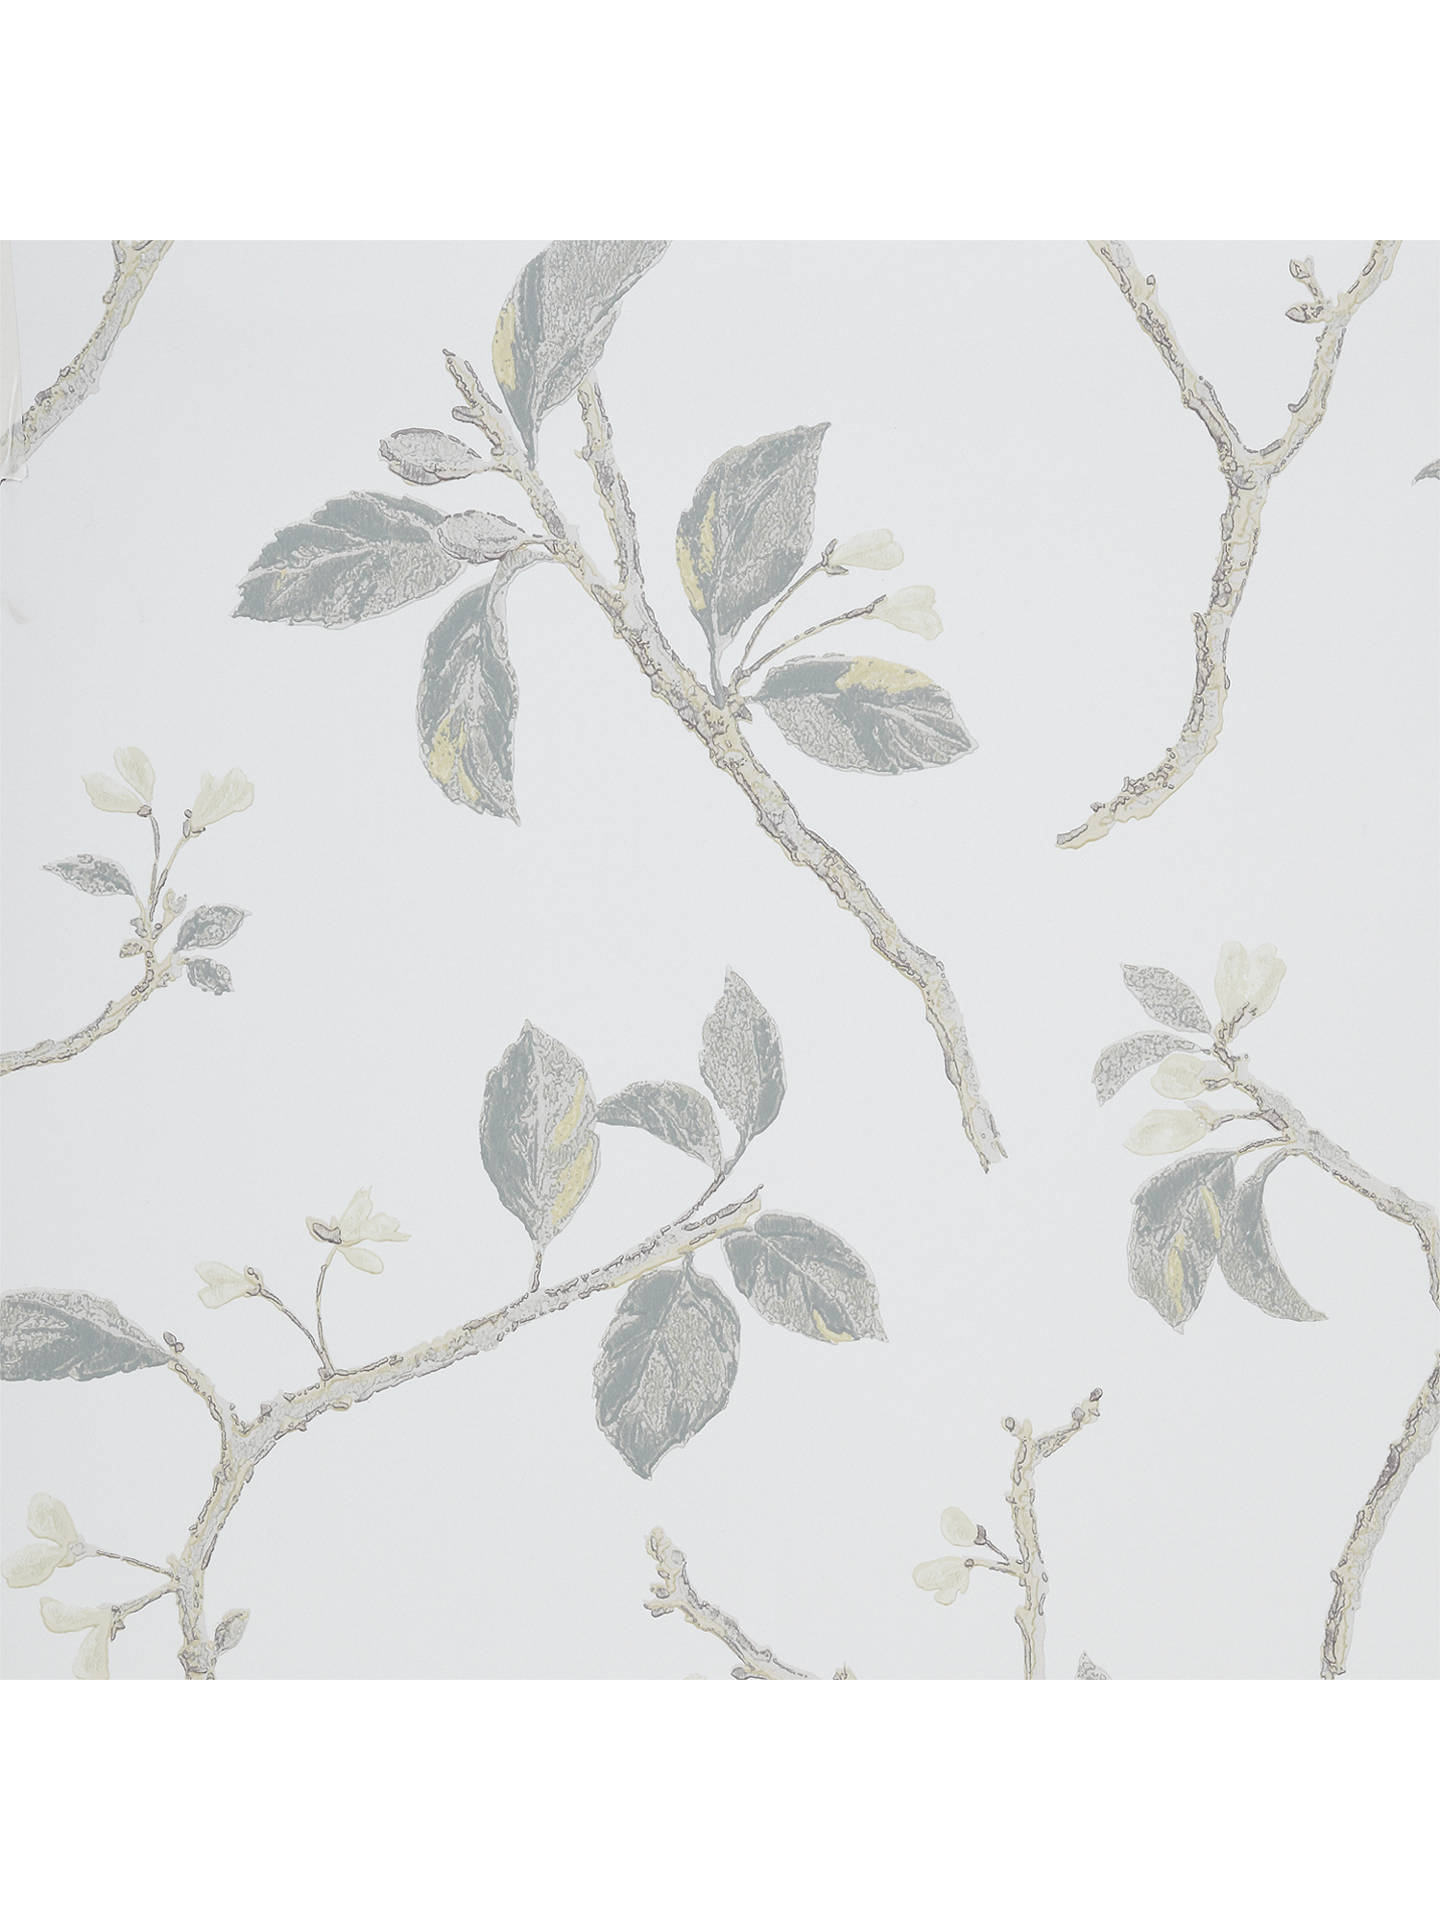 BuyPrestigious Textiles Shade Wallpaper, Mist, 1943/655 Online at johnlewis.com